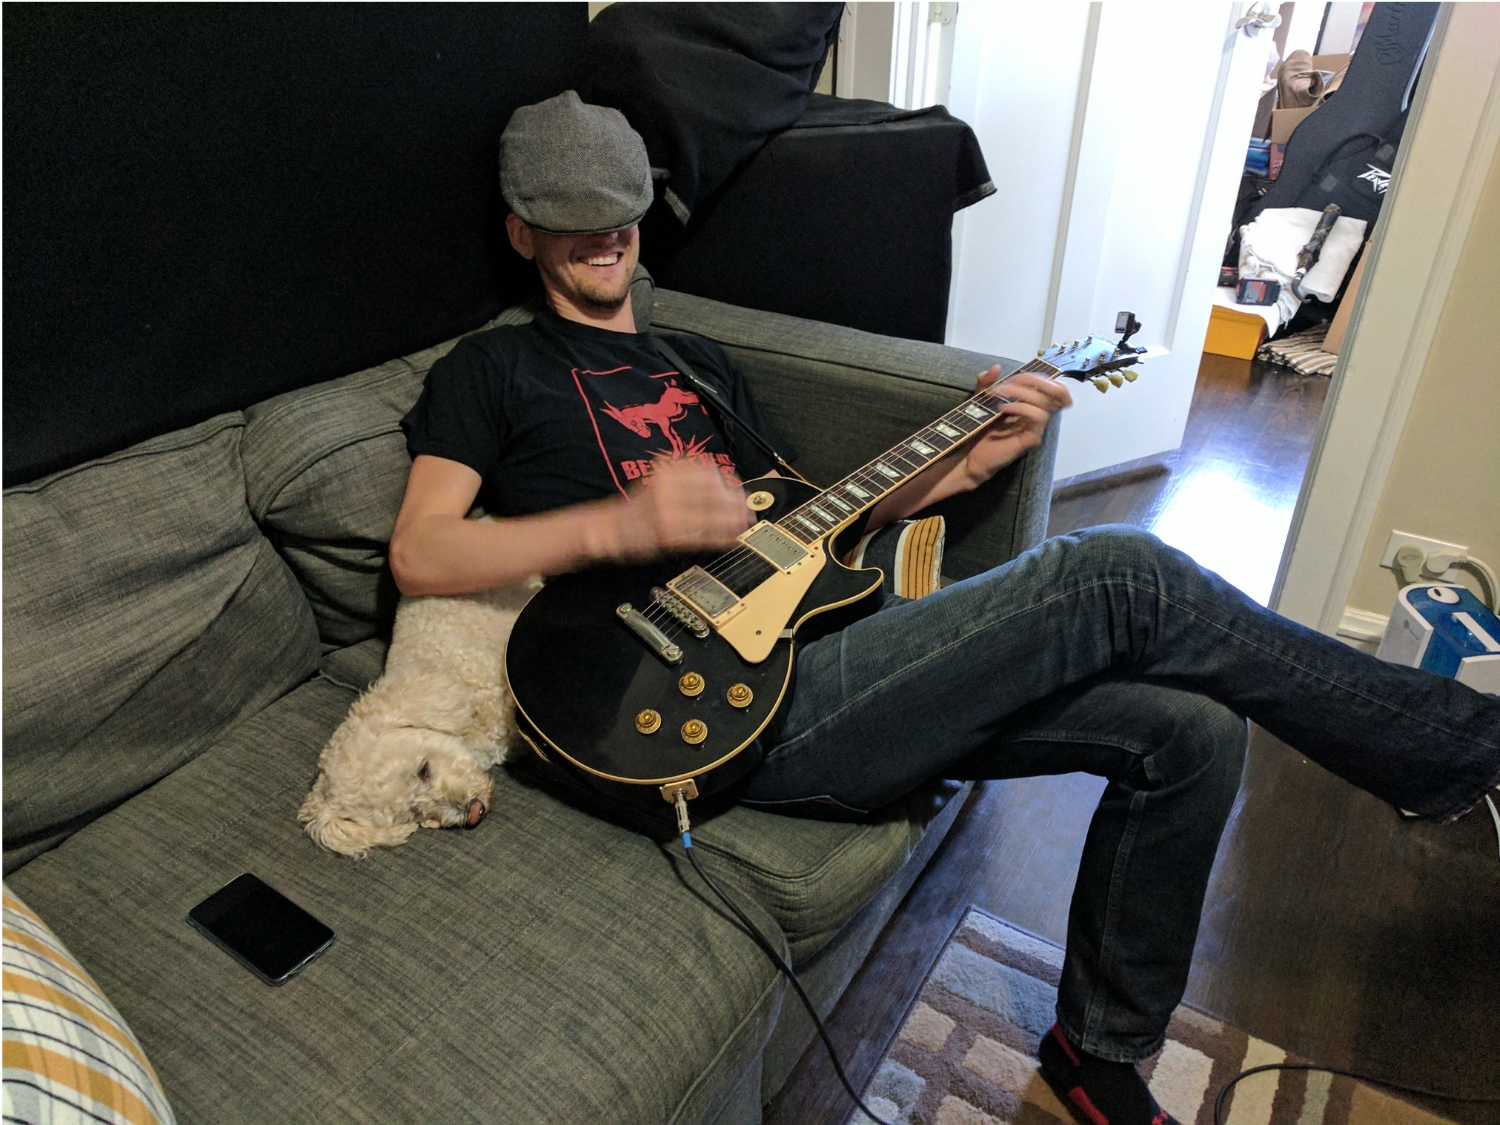 Curtis Weigel recording guitar with dog